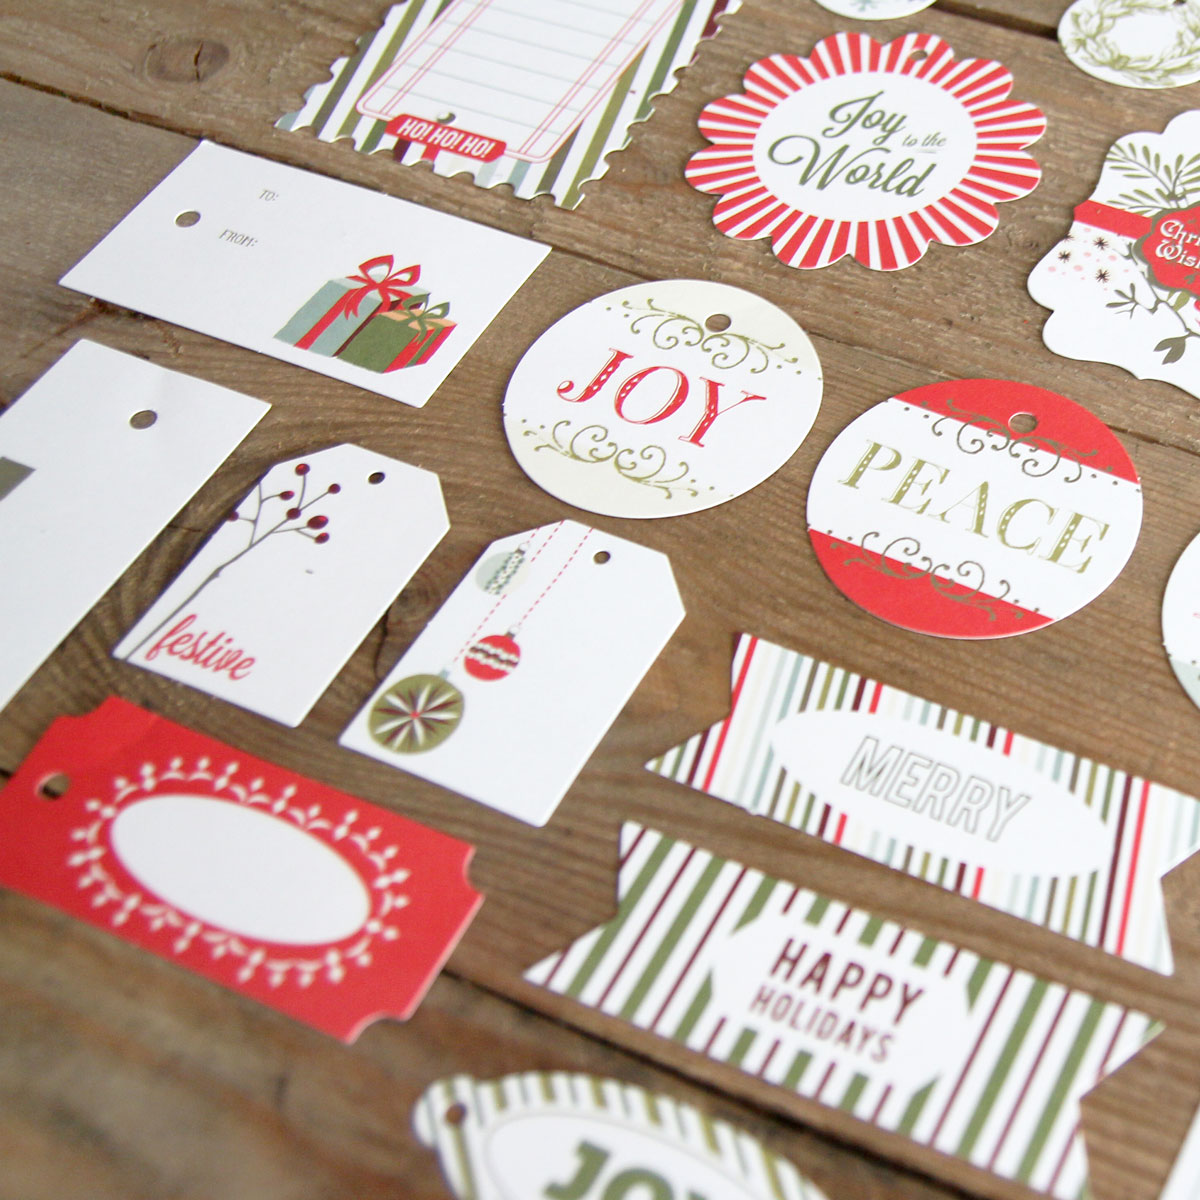 Mr_wonderful_shop_decoracion_navidad_2014_0101